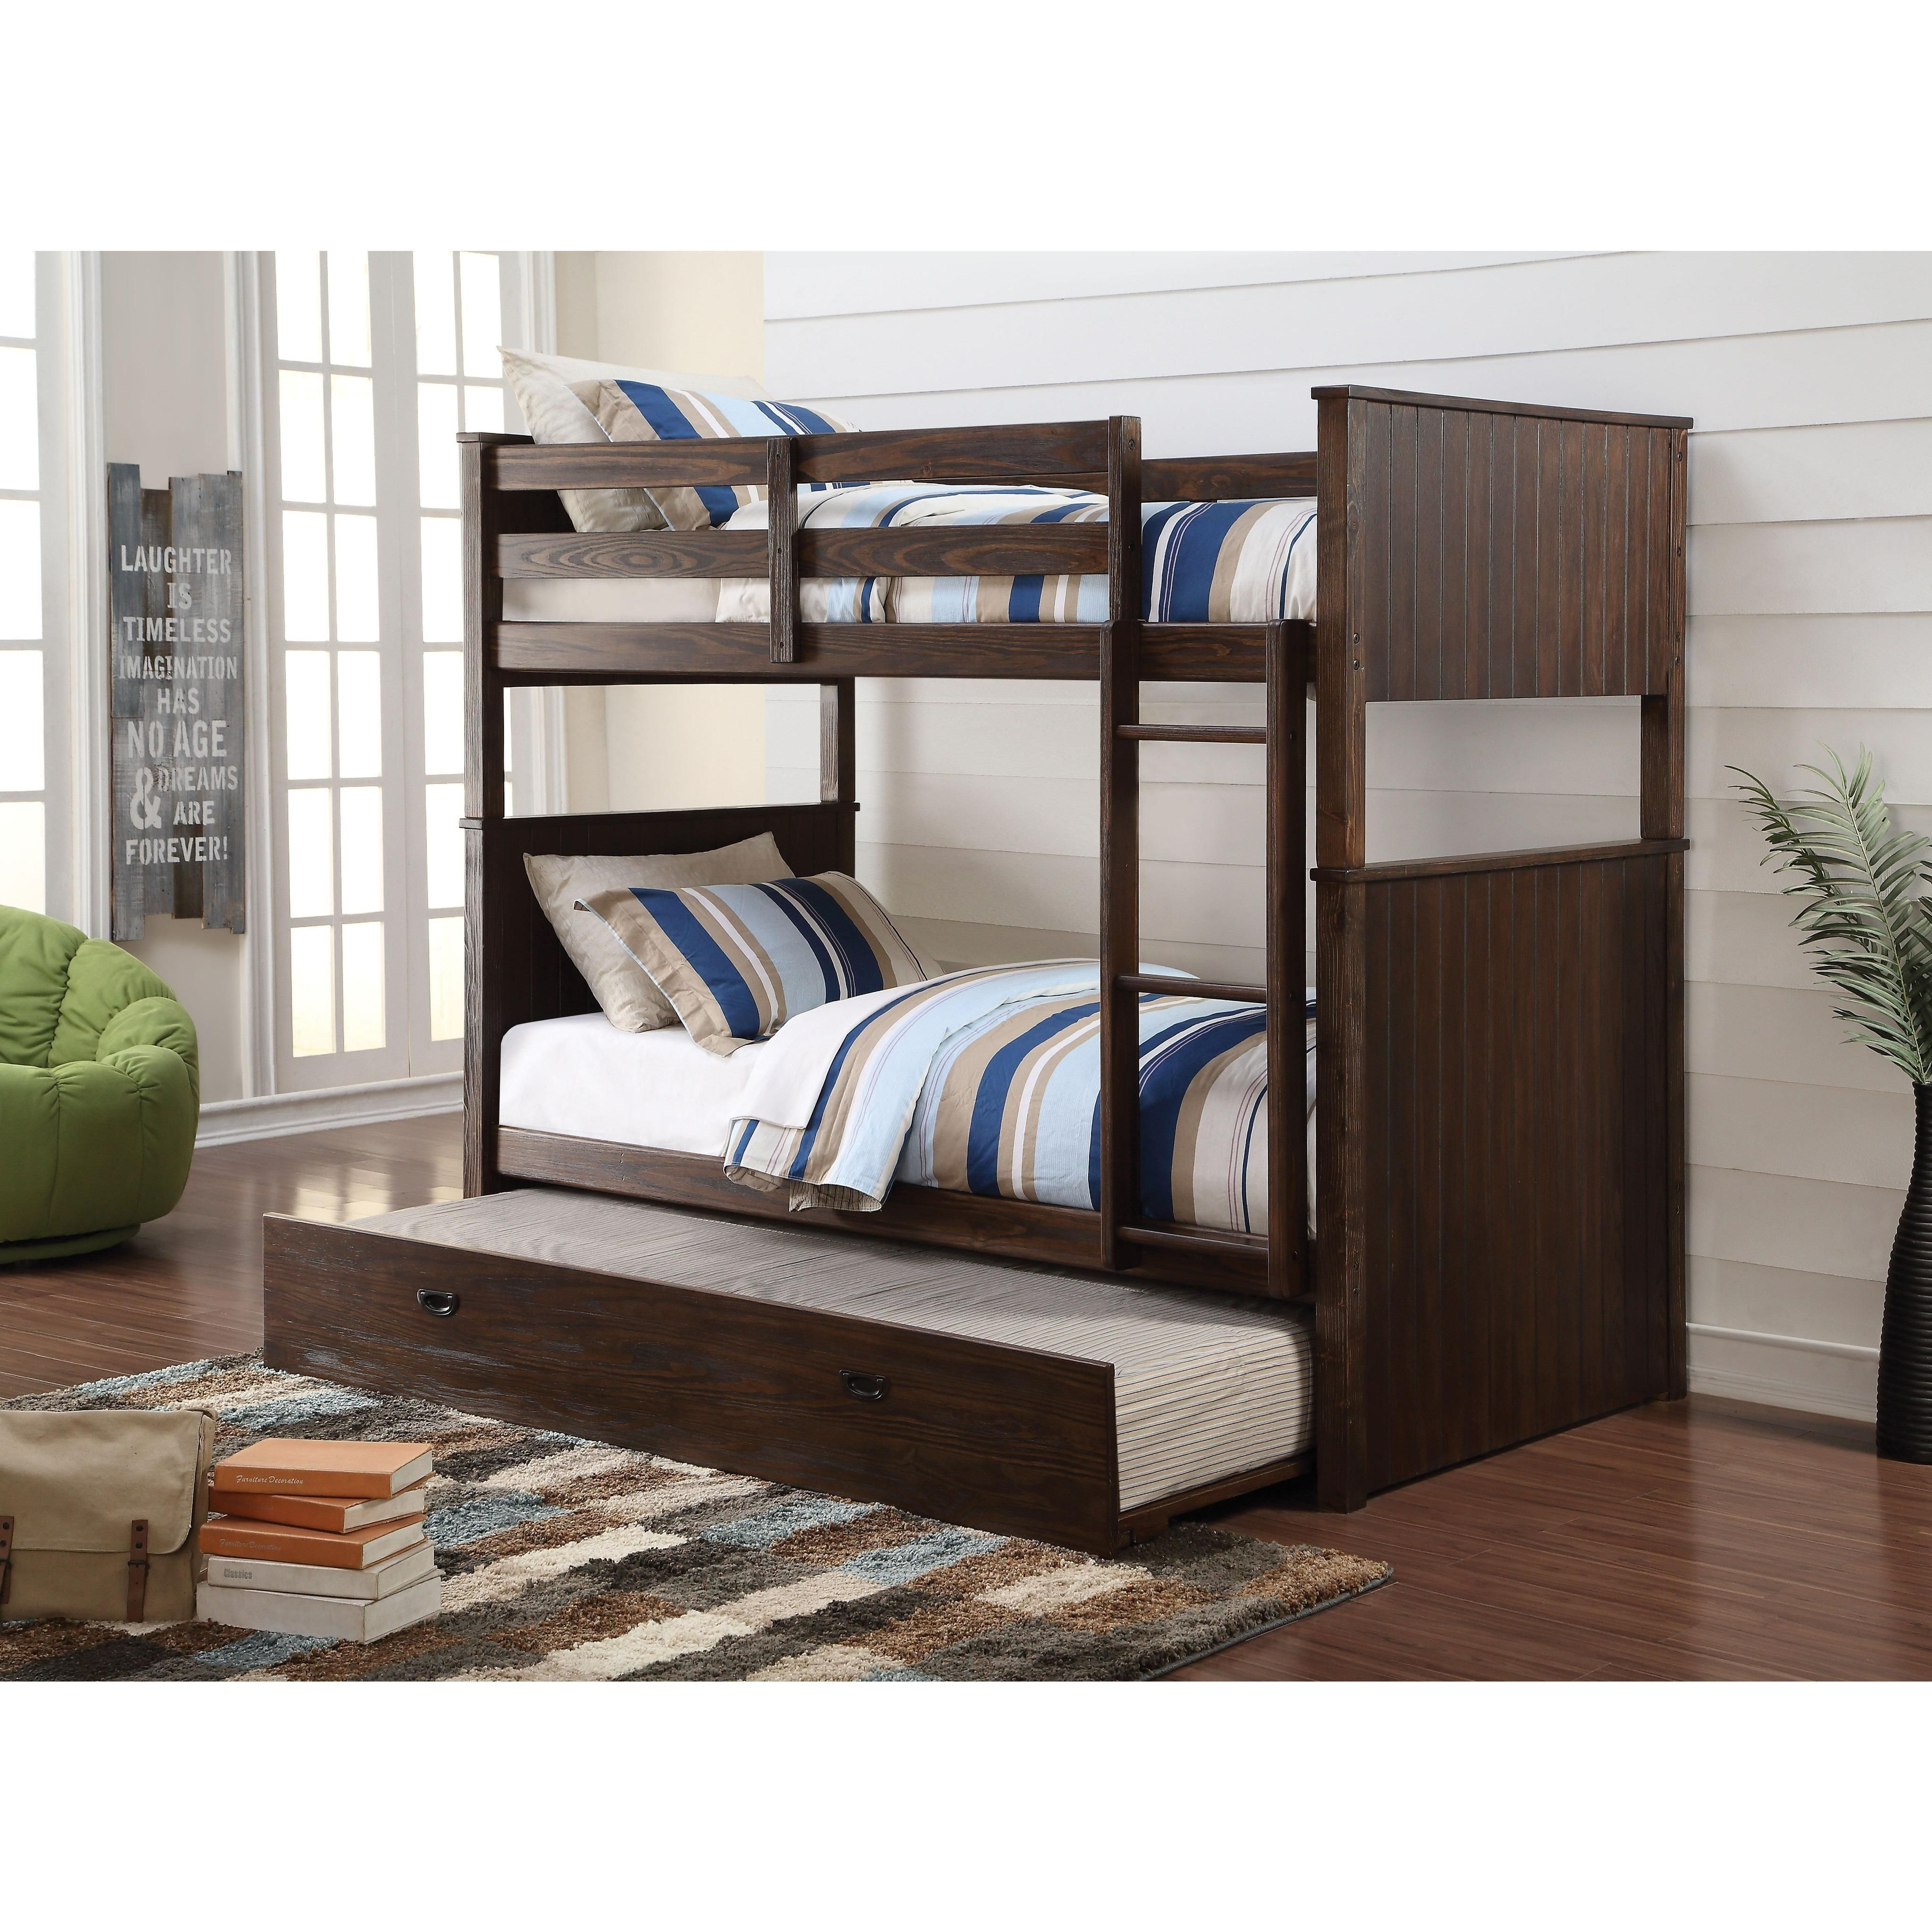 hector antique charcoal brown pine wood twin twin bunk bed with